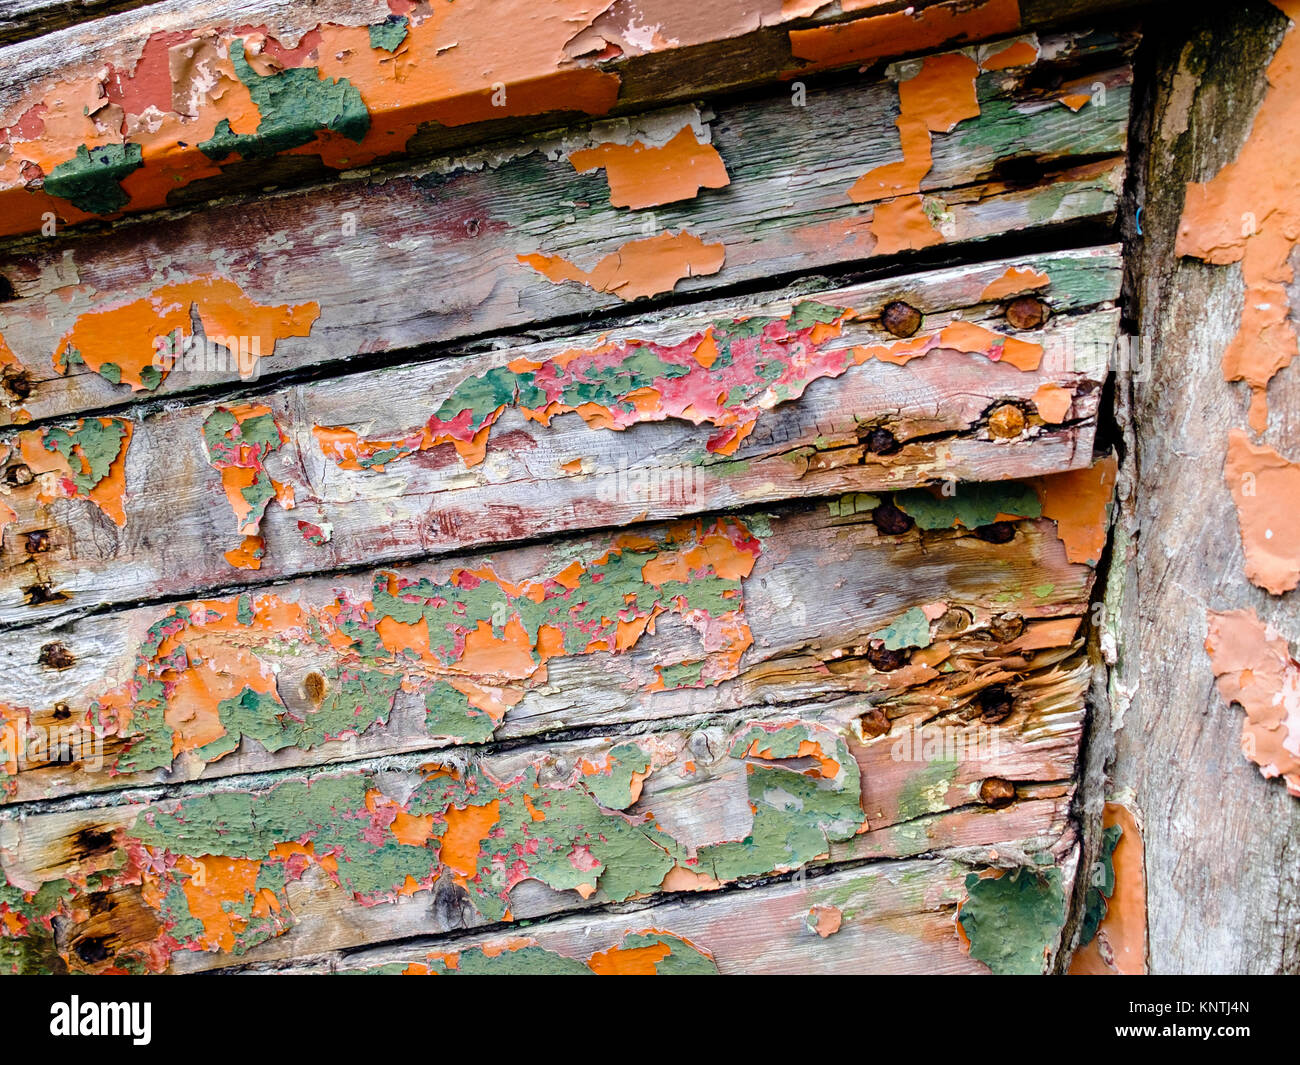 A run down and forgotten old wooden boat in a state of dereliction. - Stock Image